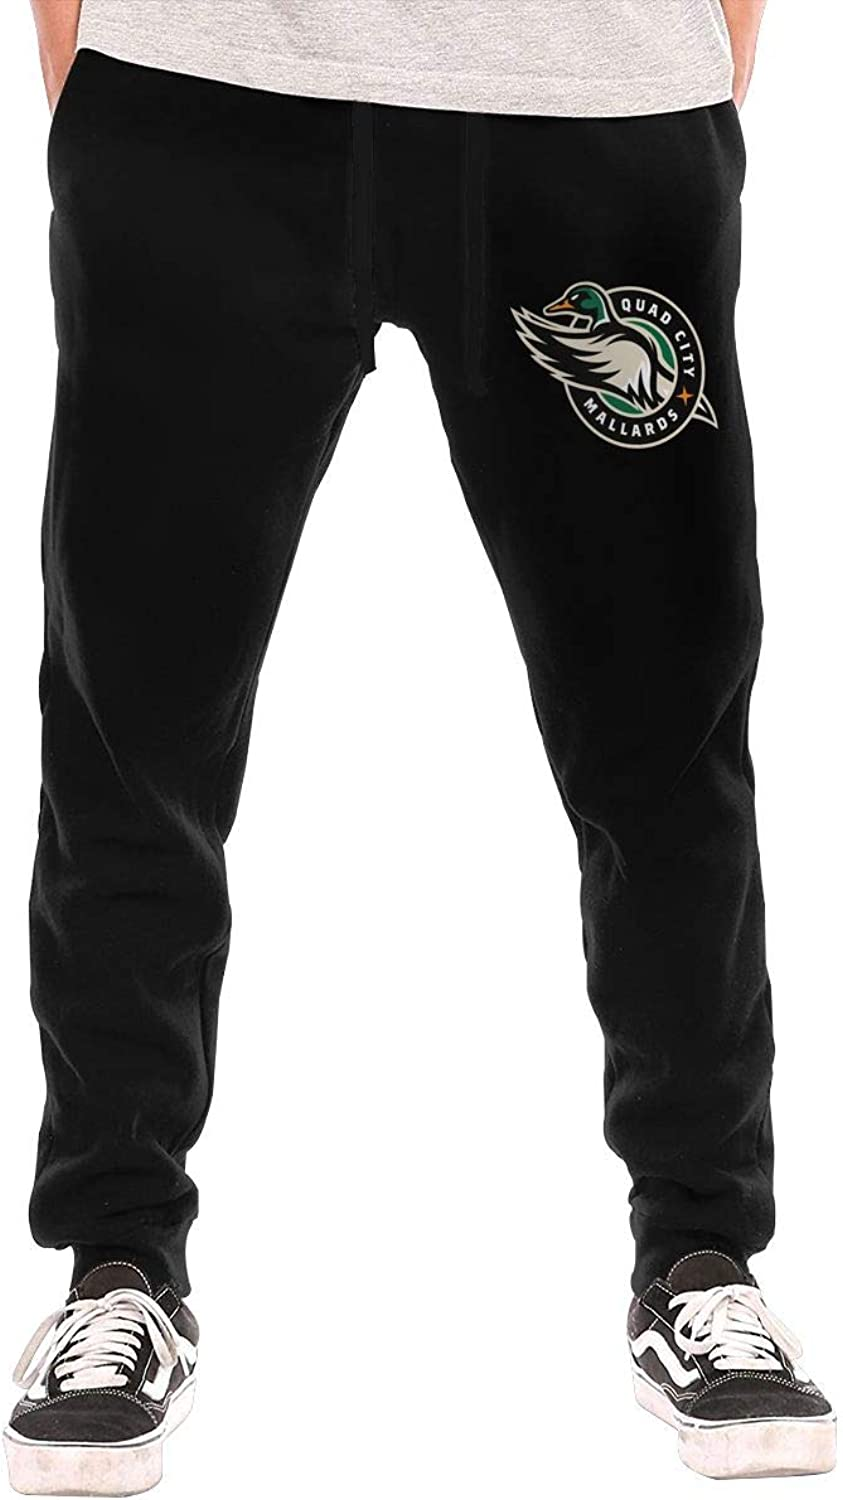 Thorea Men's Casual 2015HockeyQuadCityMallardsLogo Active Jogger Sweatpants Black